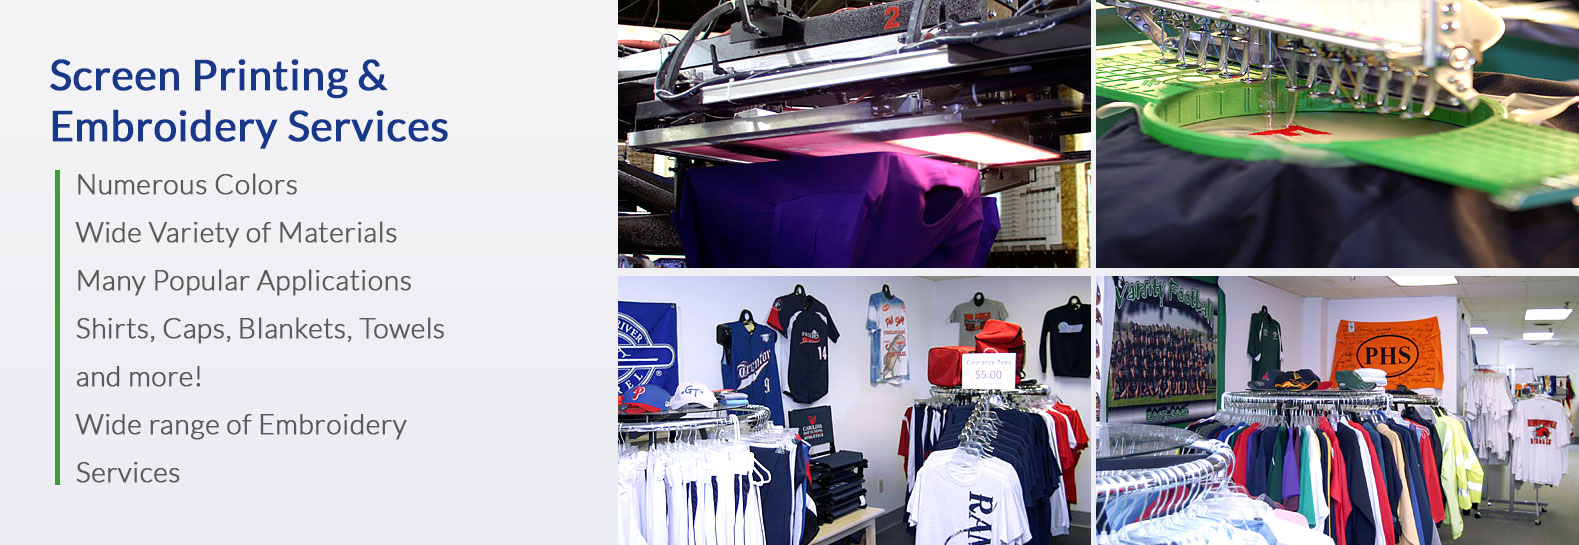 MARC provides Screen Printing and Embroidery Services